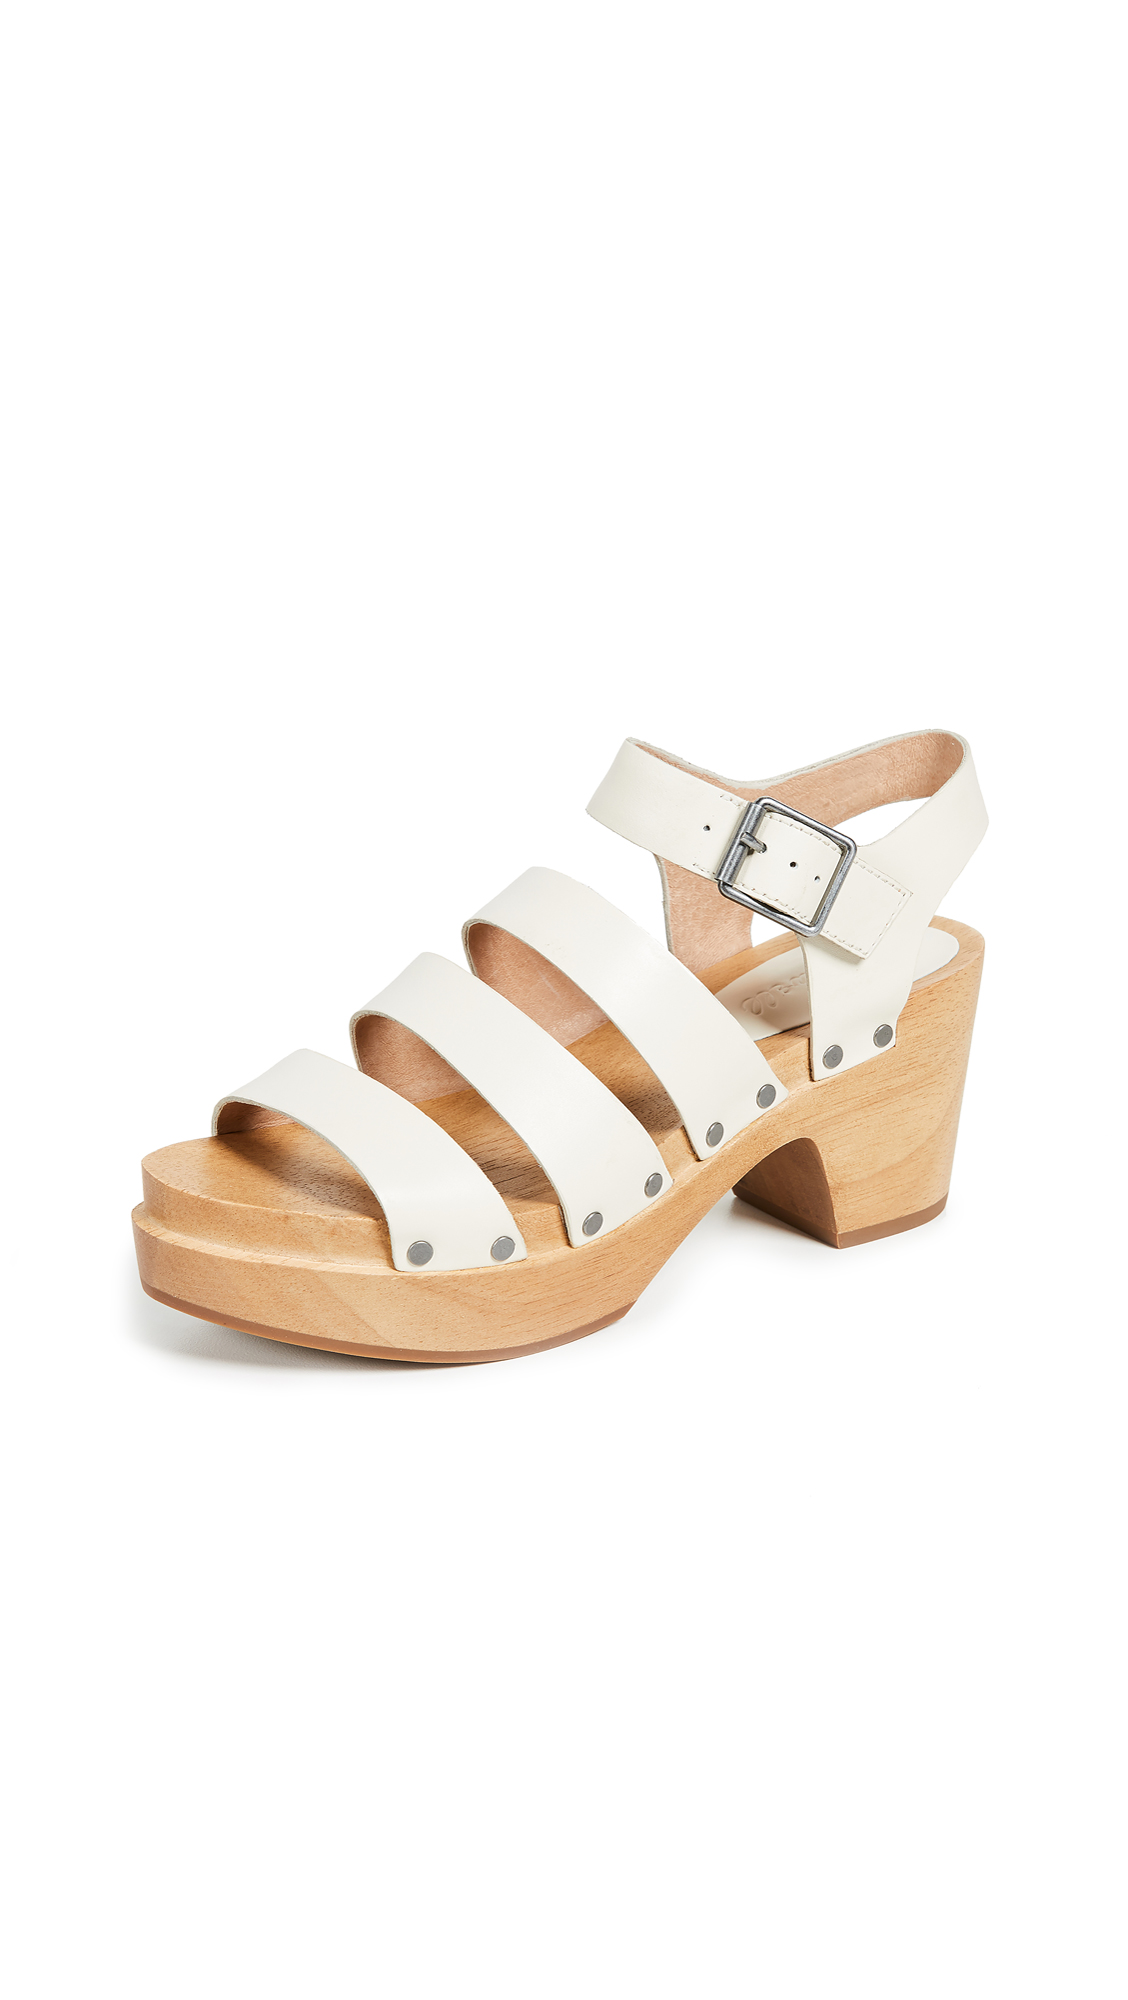 Madewell The Sigrid Clog Sandals